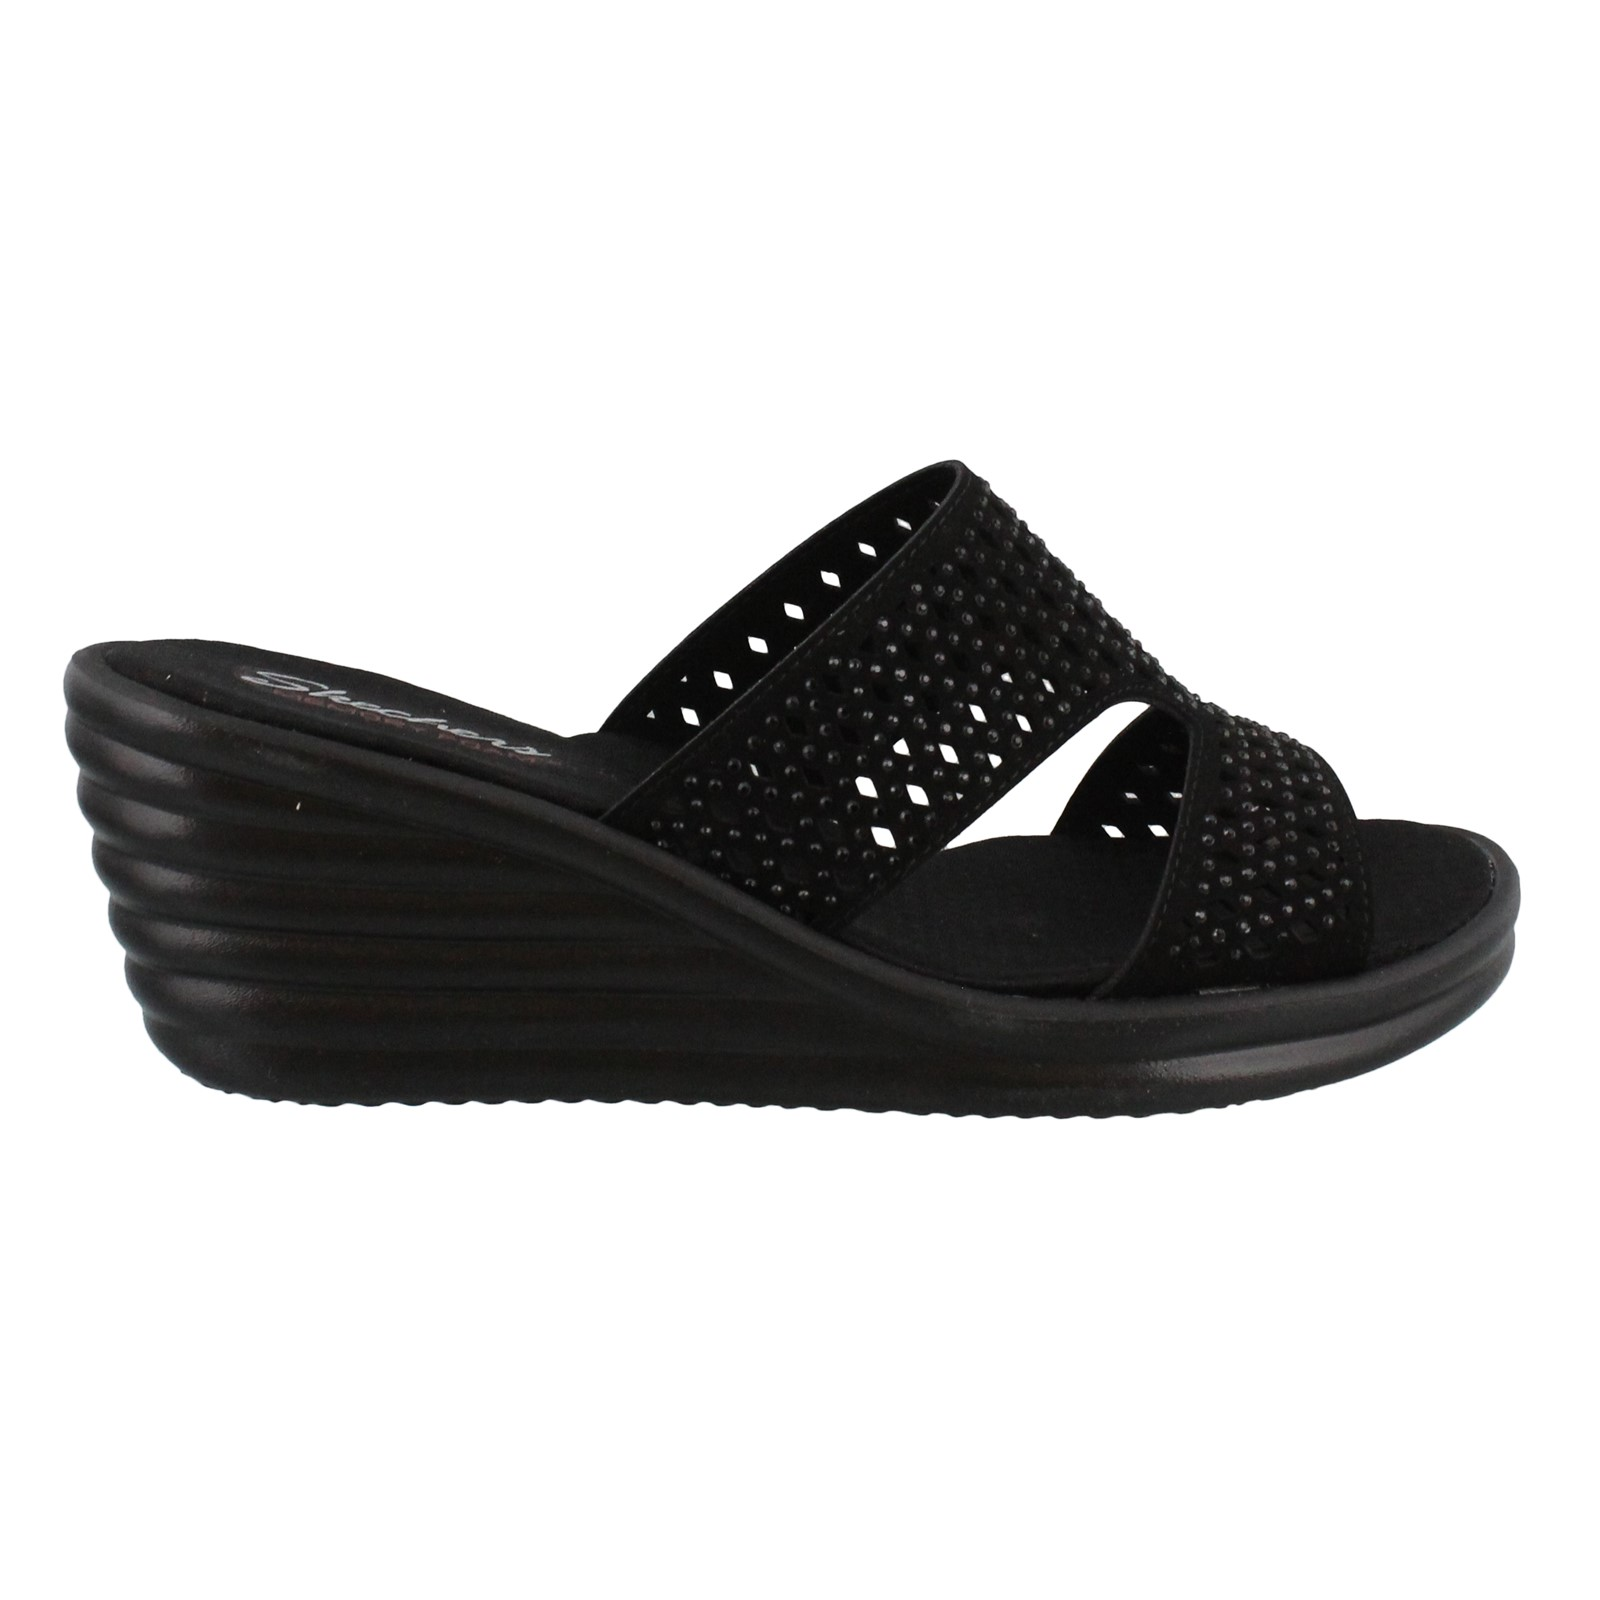 Women's Skechers, Rumbler Wave Ibiza Summer Wedge Sandals